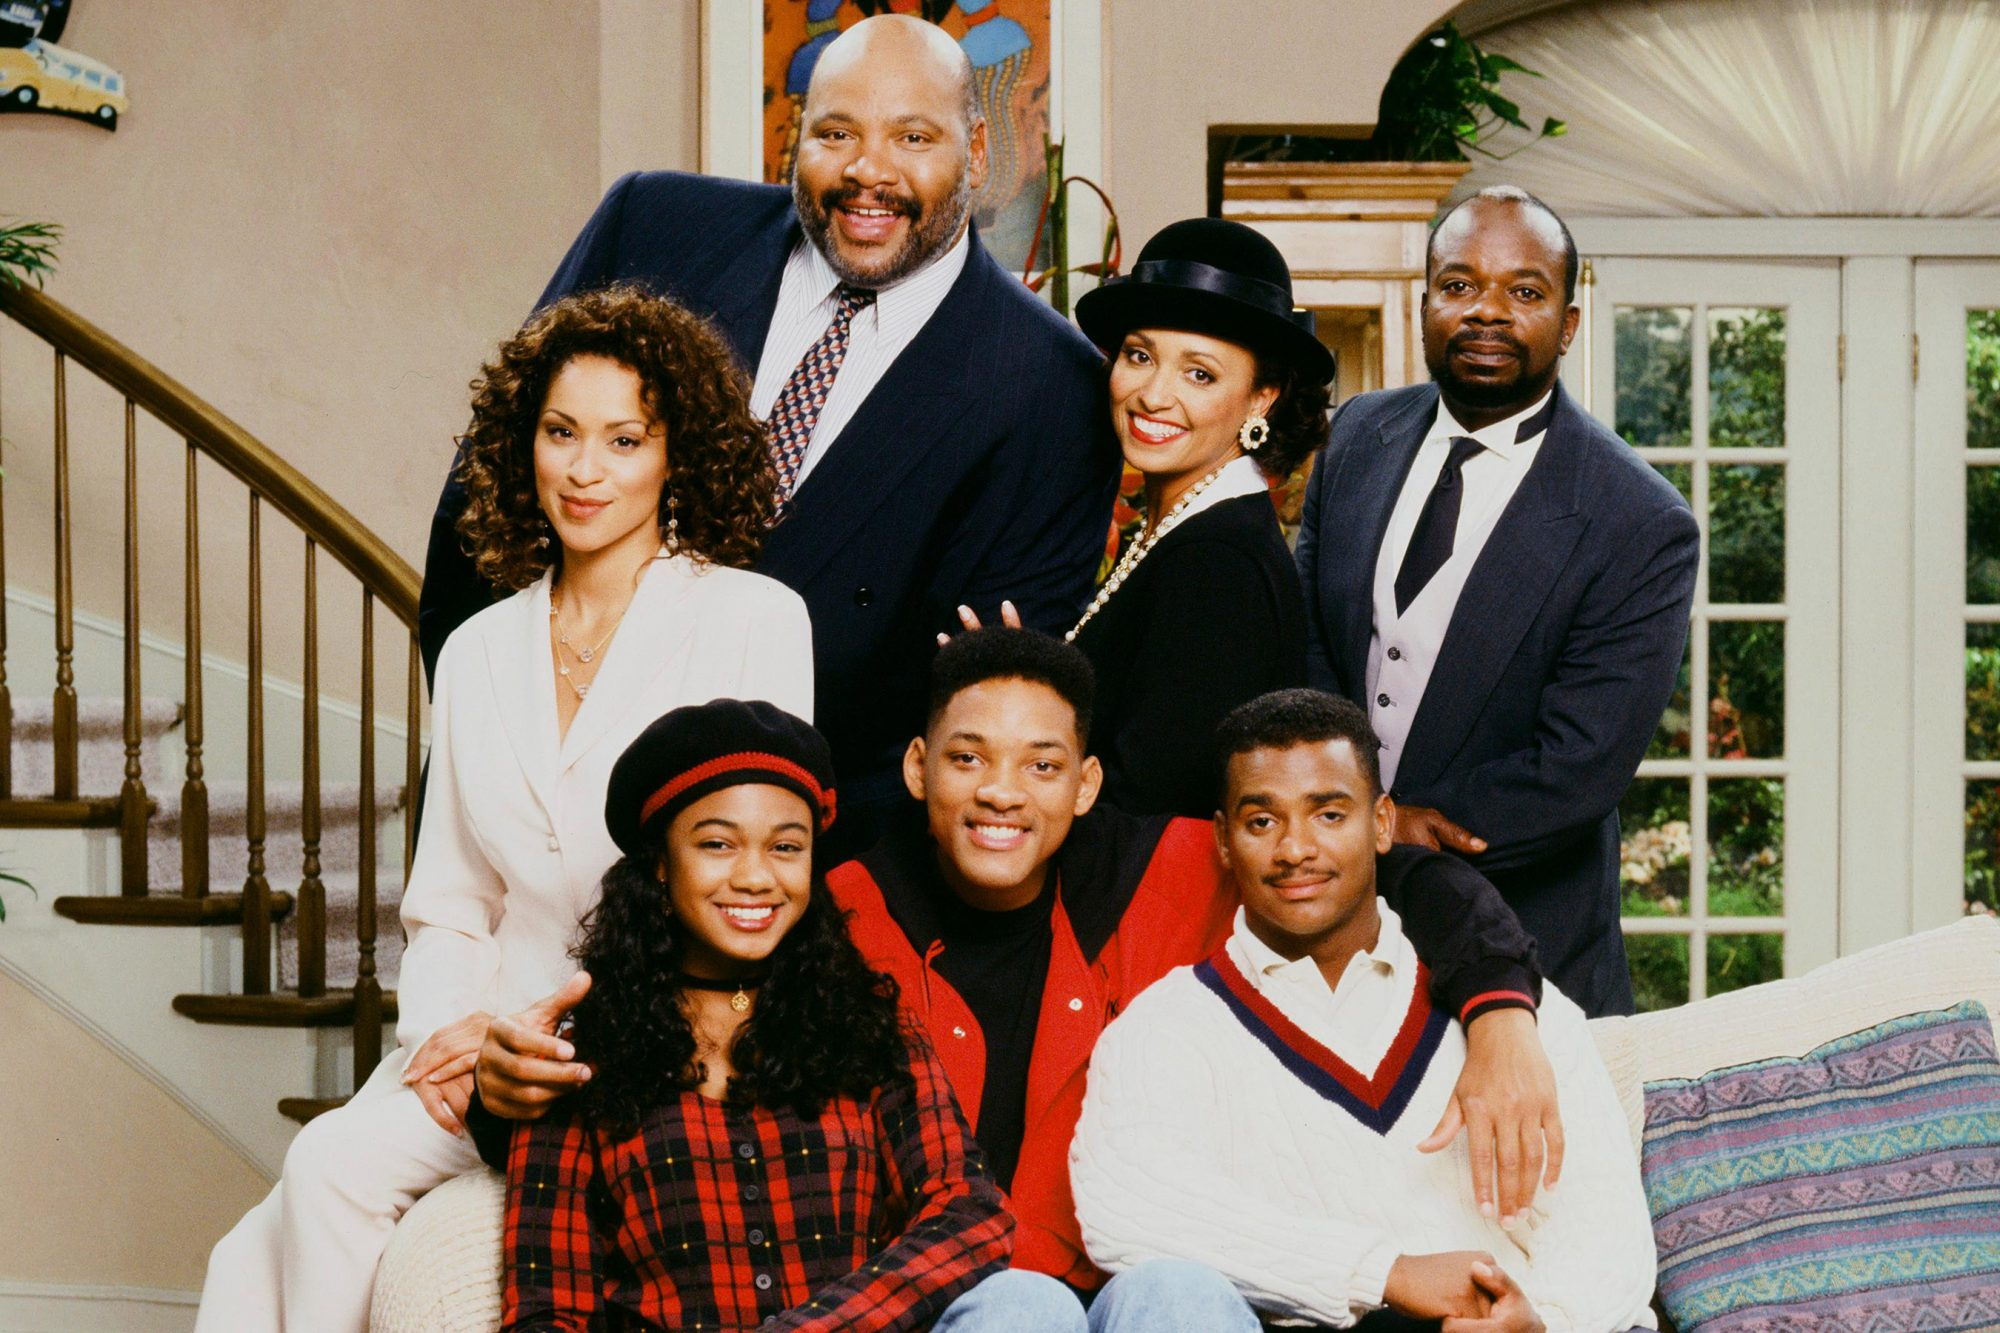 THE FRESH PRINCE OF BEL-AIR -- Pictured: Will Smith